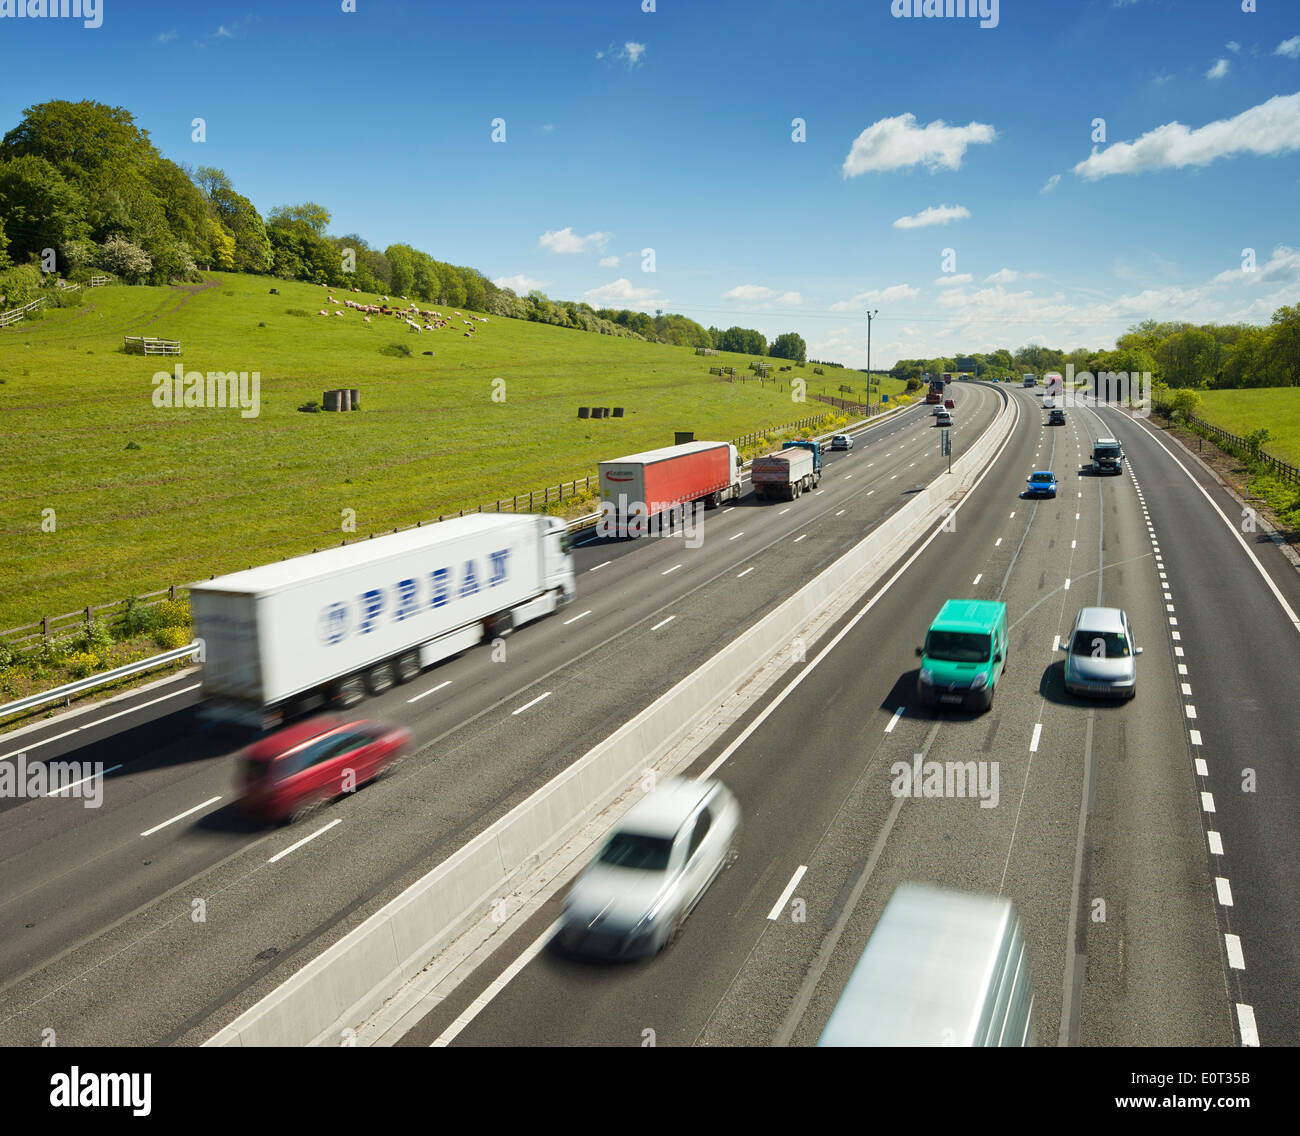 M25 cutting through the countryside at Redhill, Surrey. - Stock Image